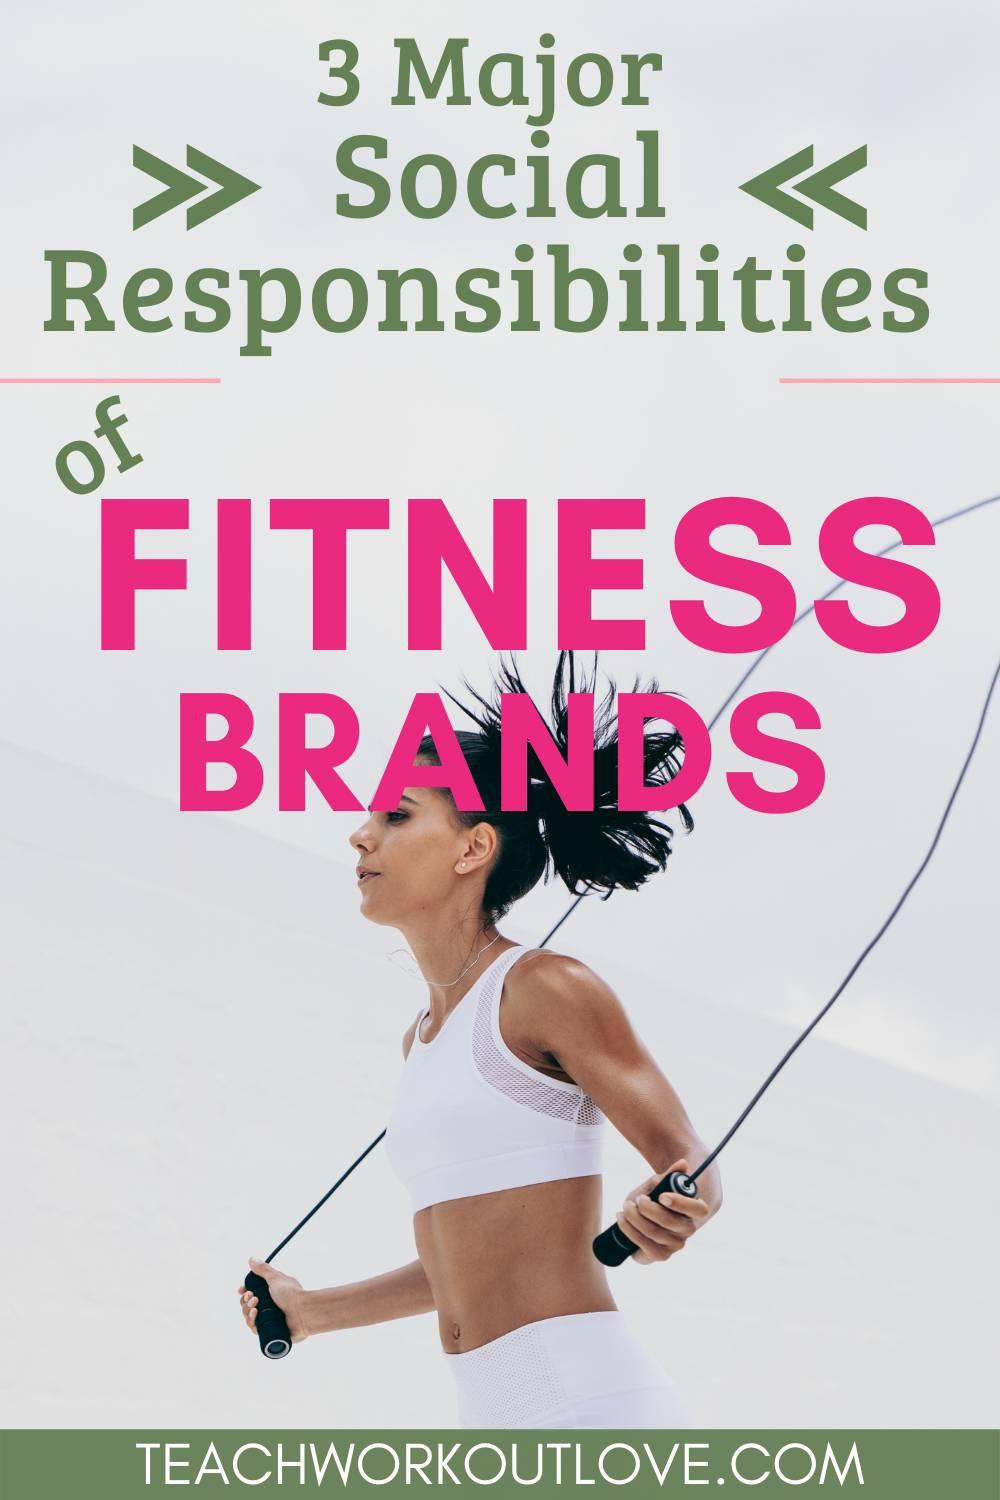 In this post, we have discussed the social responsibilities of fitness brands, and what we as fitness hobbyists would like to see.